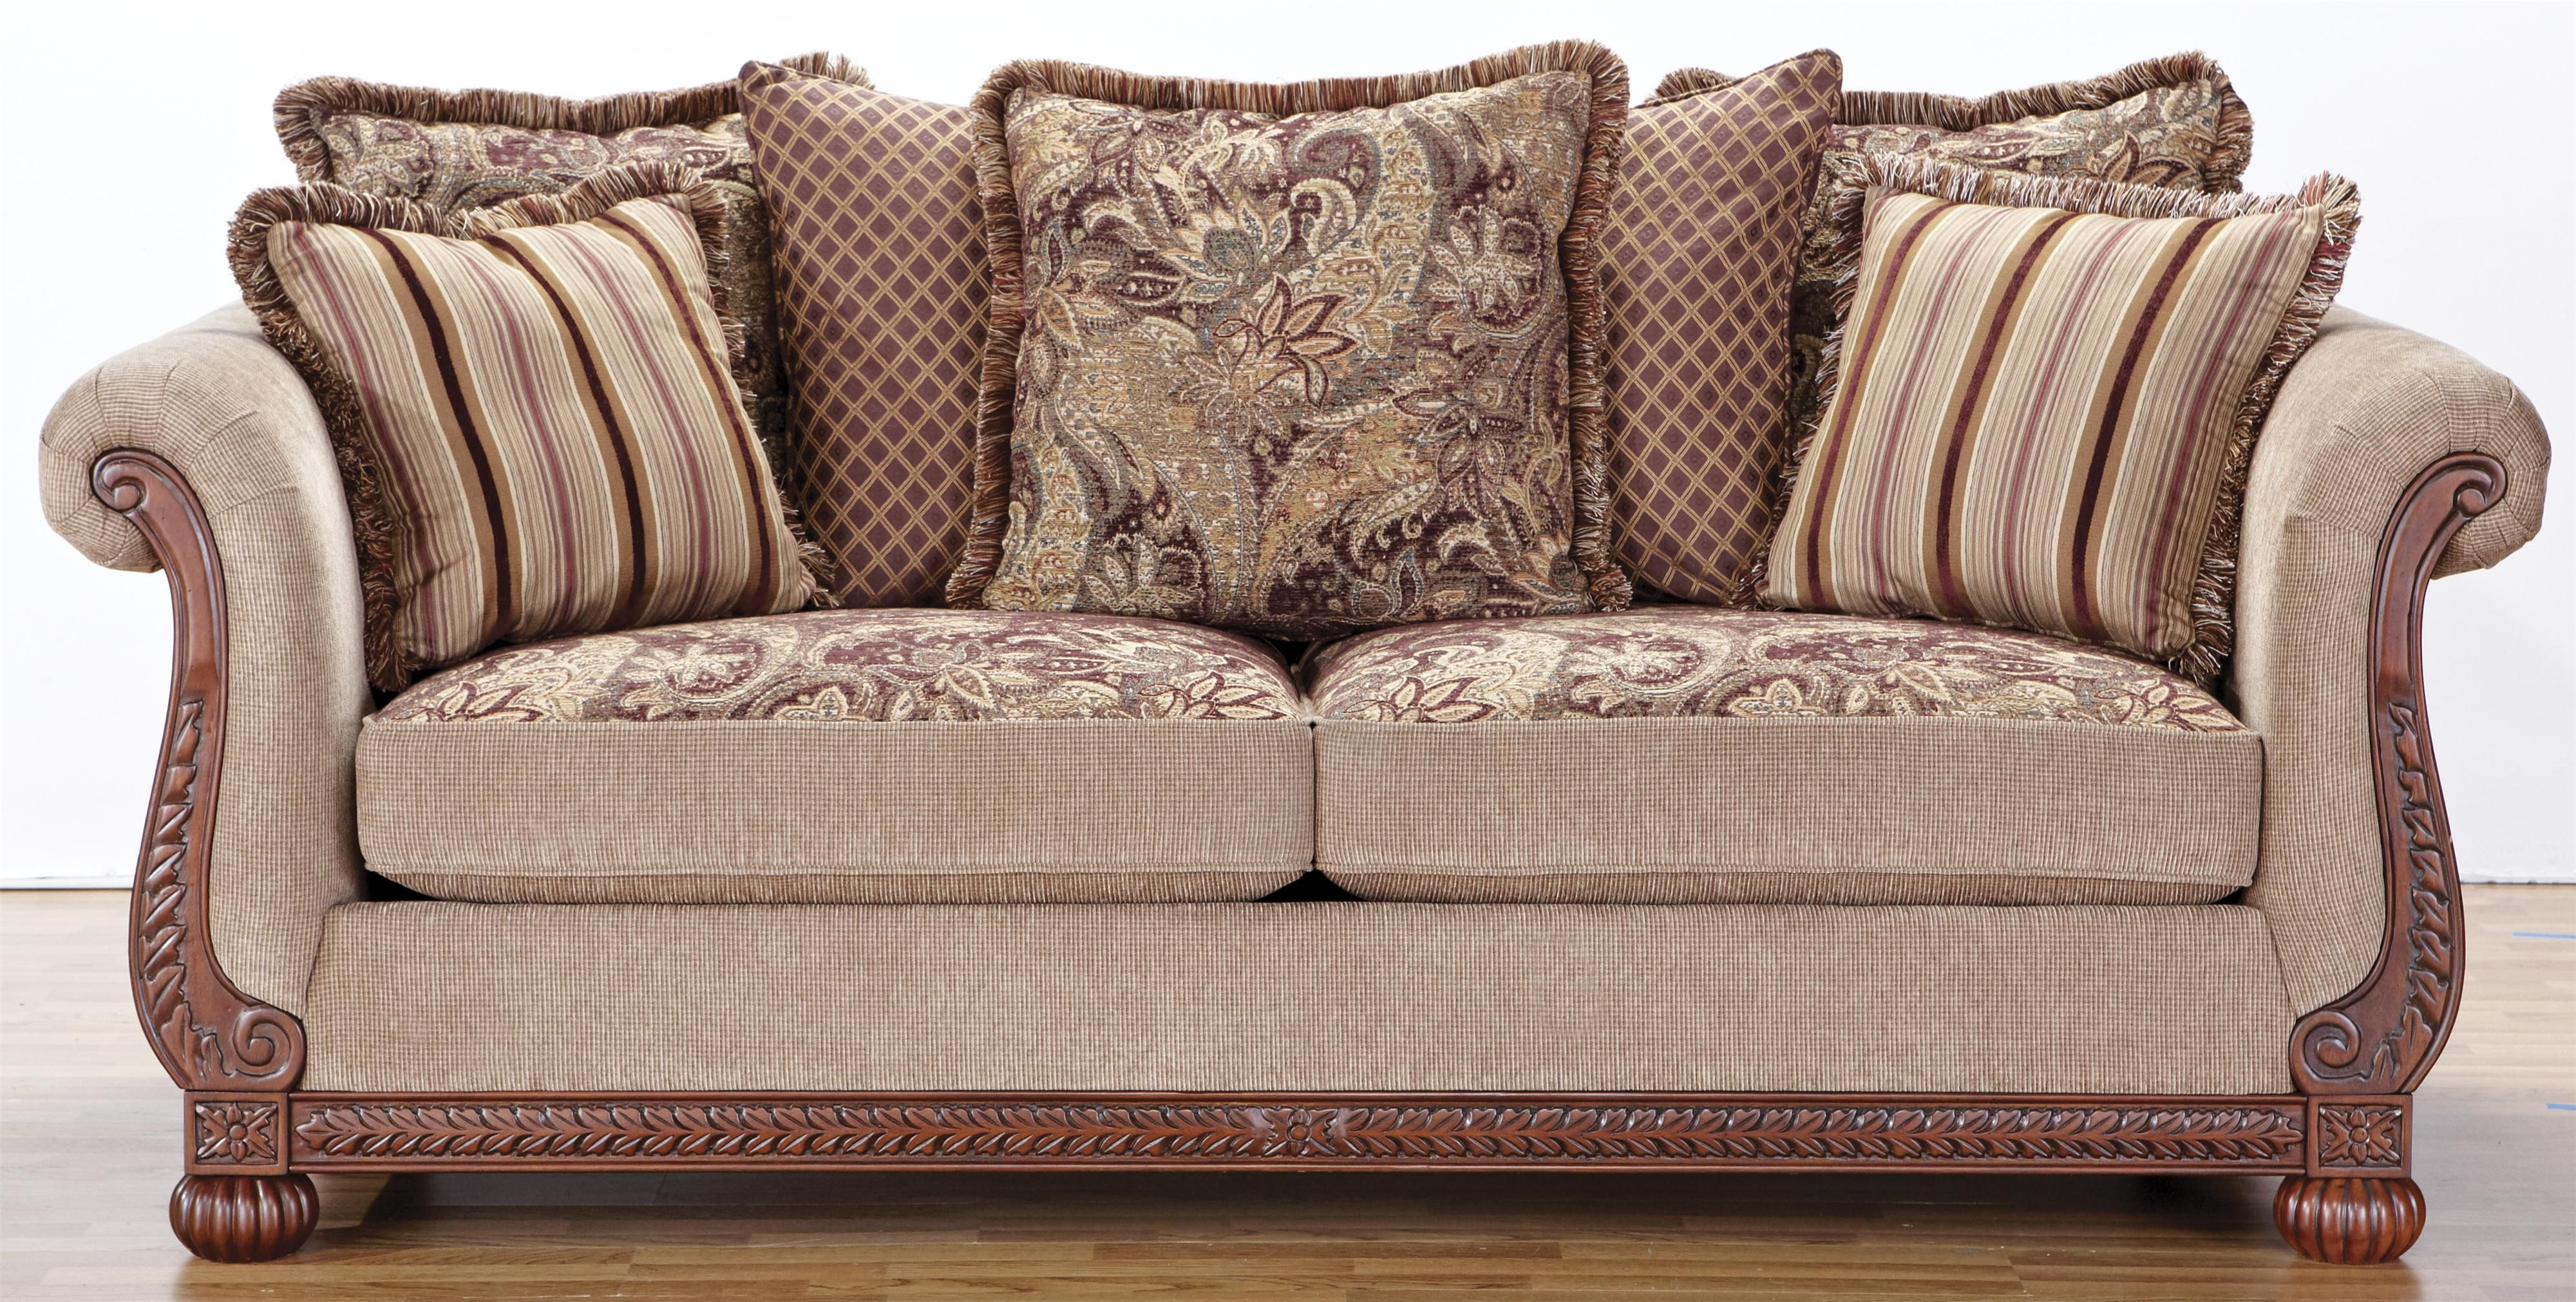 Best 8716 Sofa By Hm Richards Affordable Furniture Stores 400 x 300